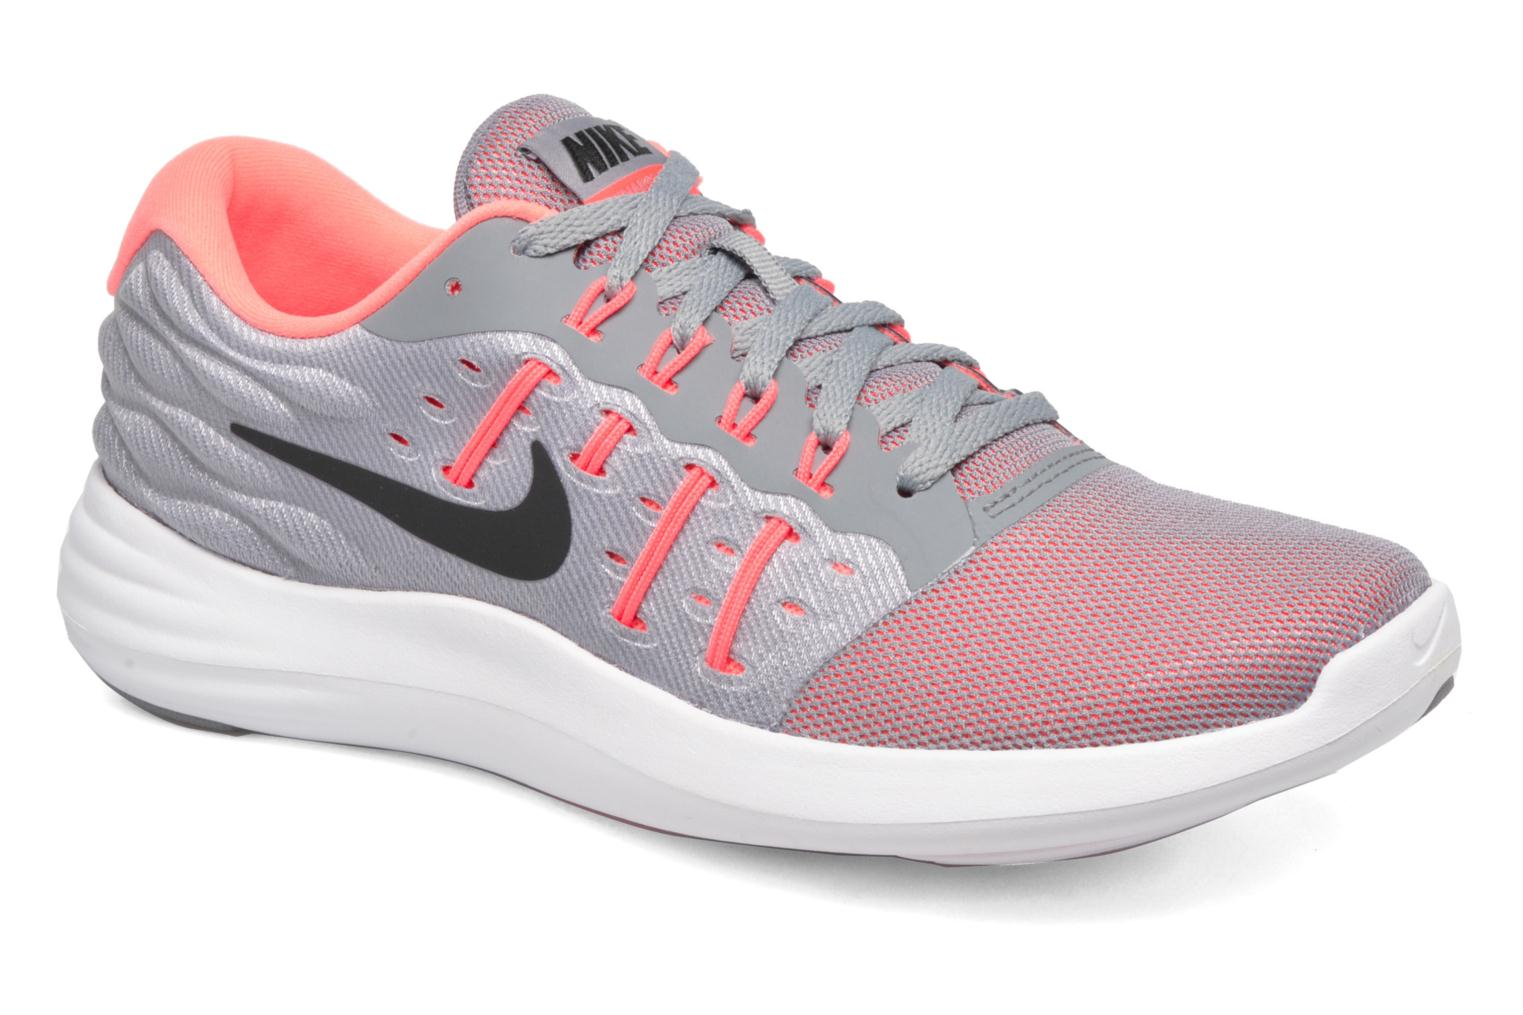 Wmns Nike Lunarstelos Stealth/Black-Hot Punch-Lava Glow